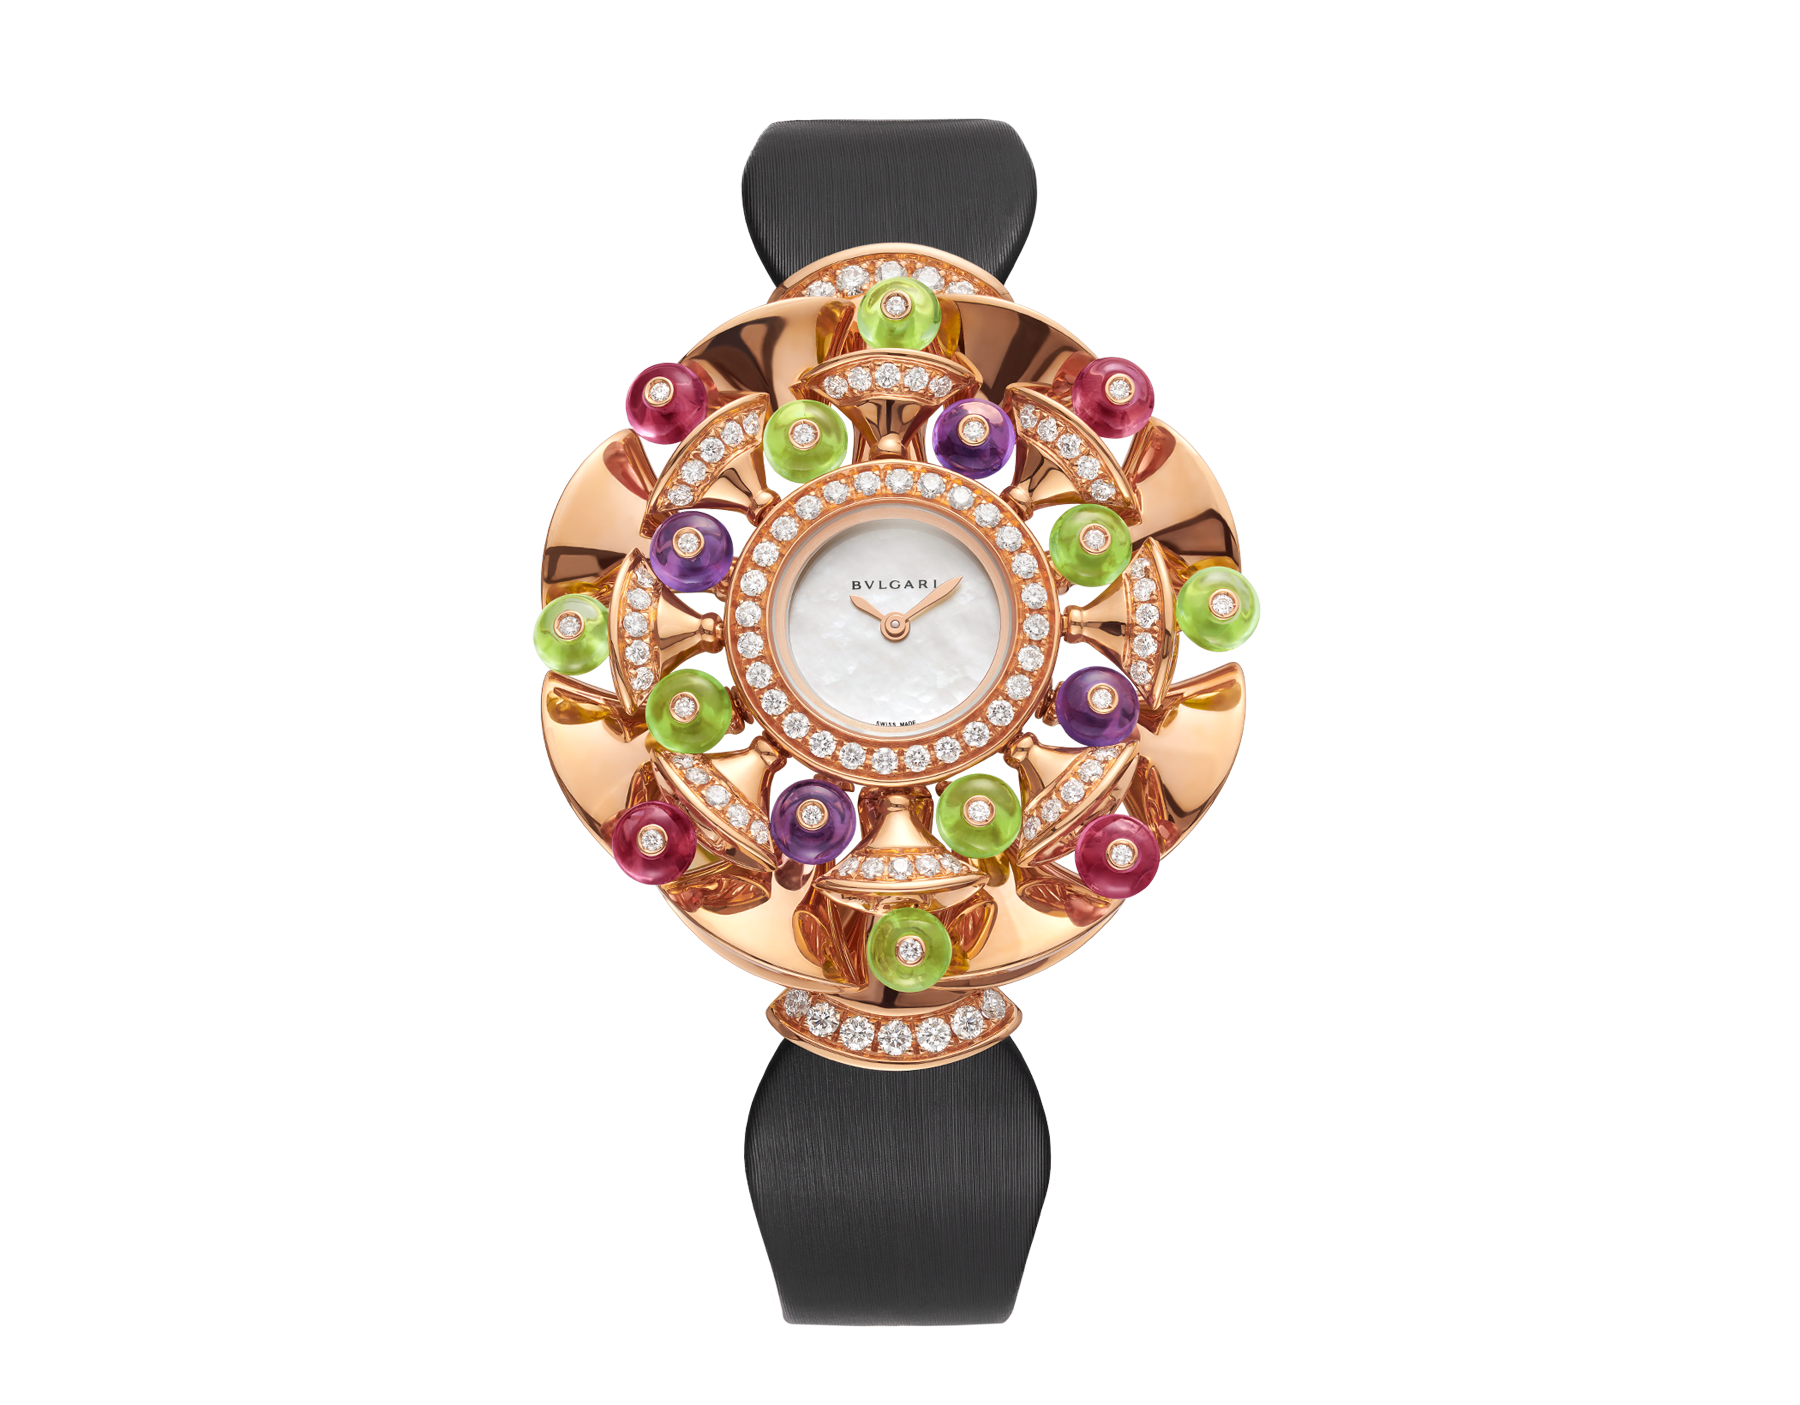 DIVAS' DREAM watch with 18 kt rose gold case set with brilliant-cut diamonds, peridot, rubellite and amethyst beads, white mother-of-pearl dial and black satin bracelet 102217 image 1